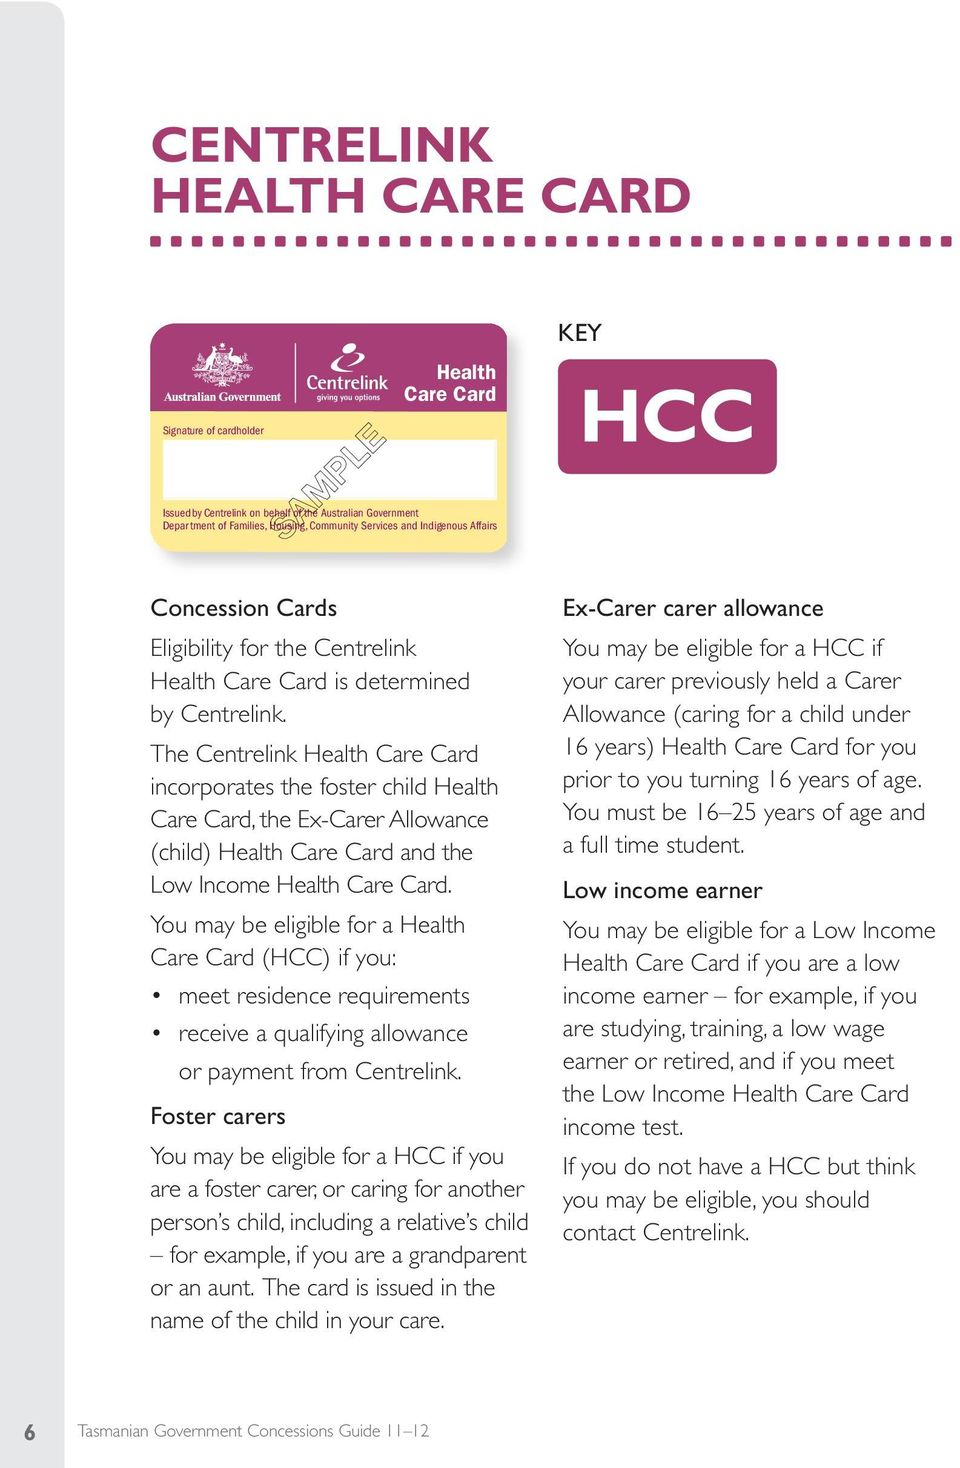 The Centrelink Health Care Card incorporates the foster child Health Care Card, the Ex-Carer Allowance (child) Health Care Card and the Low Income Health Care Card.